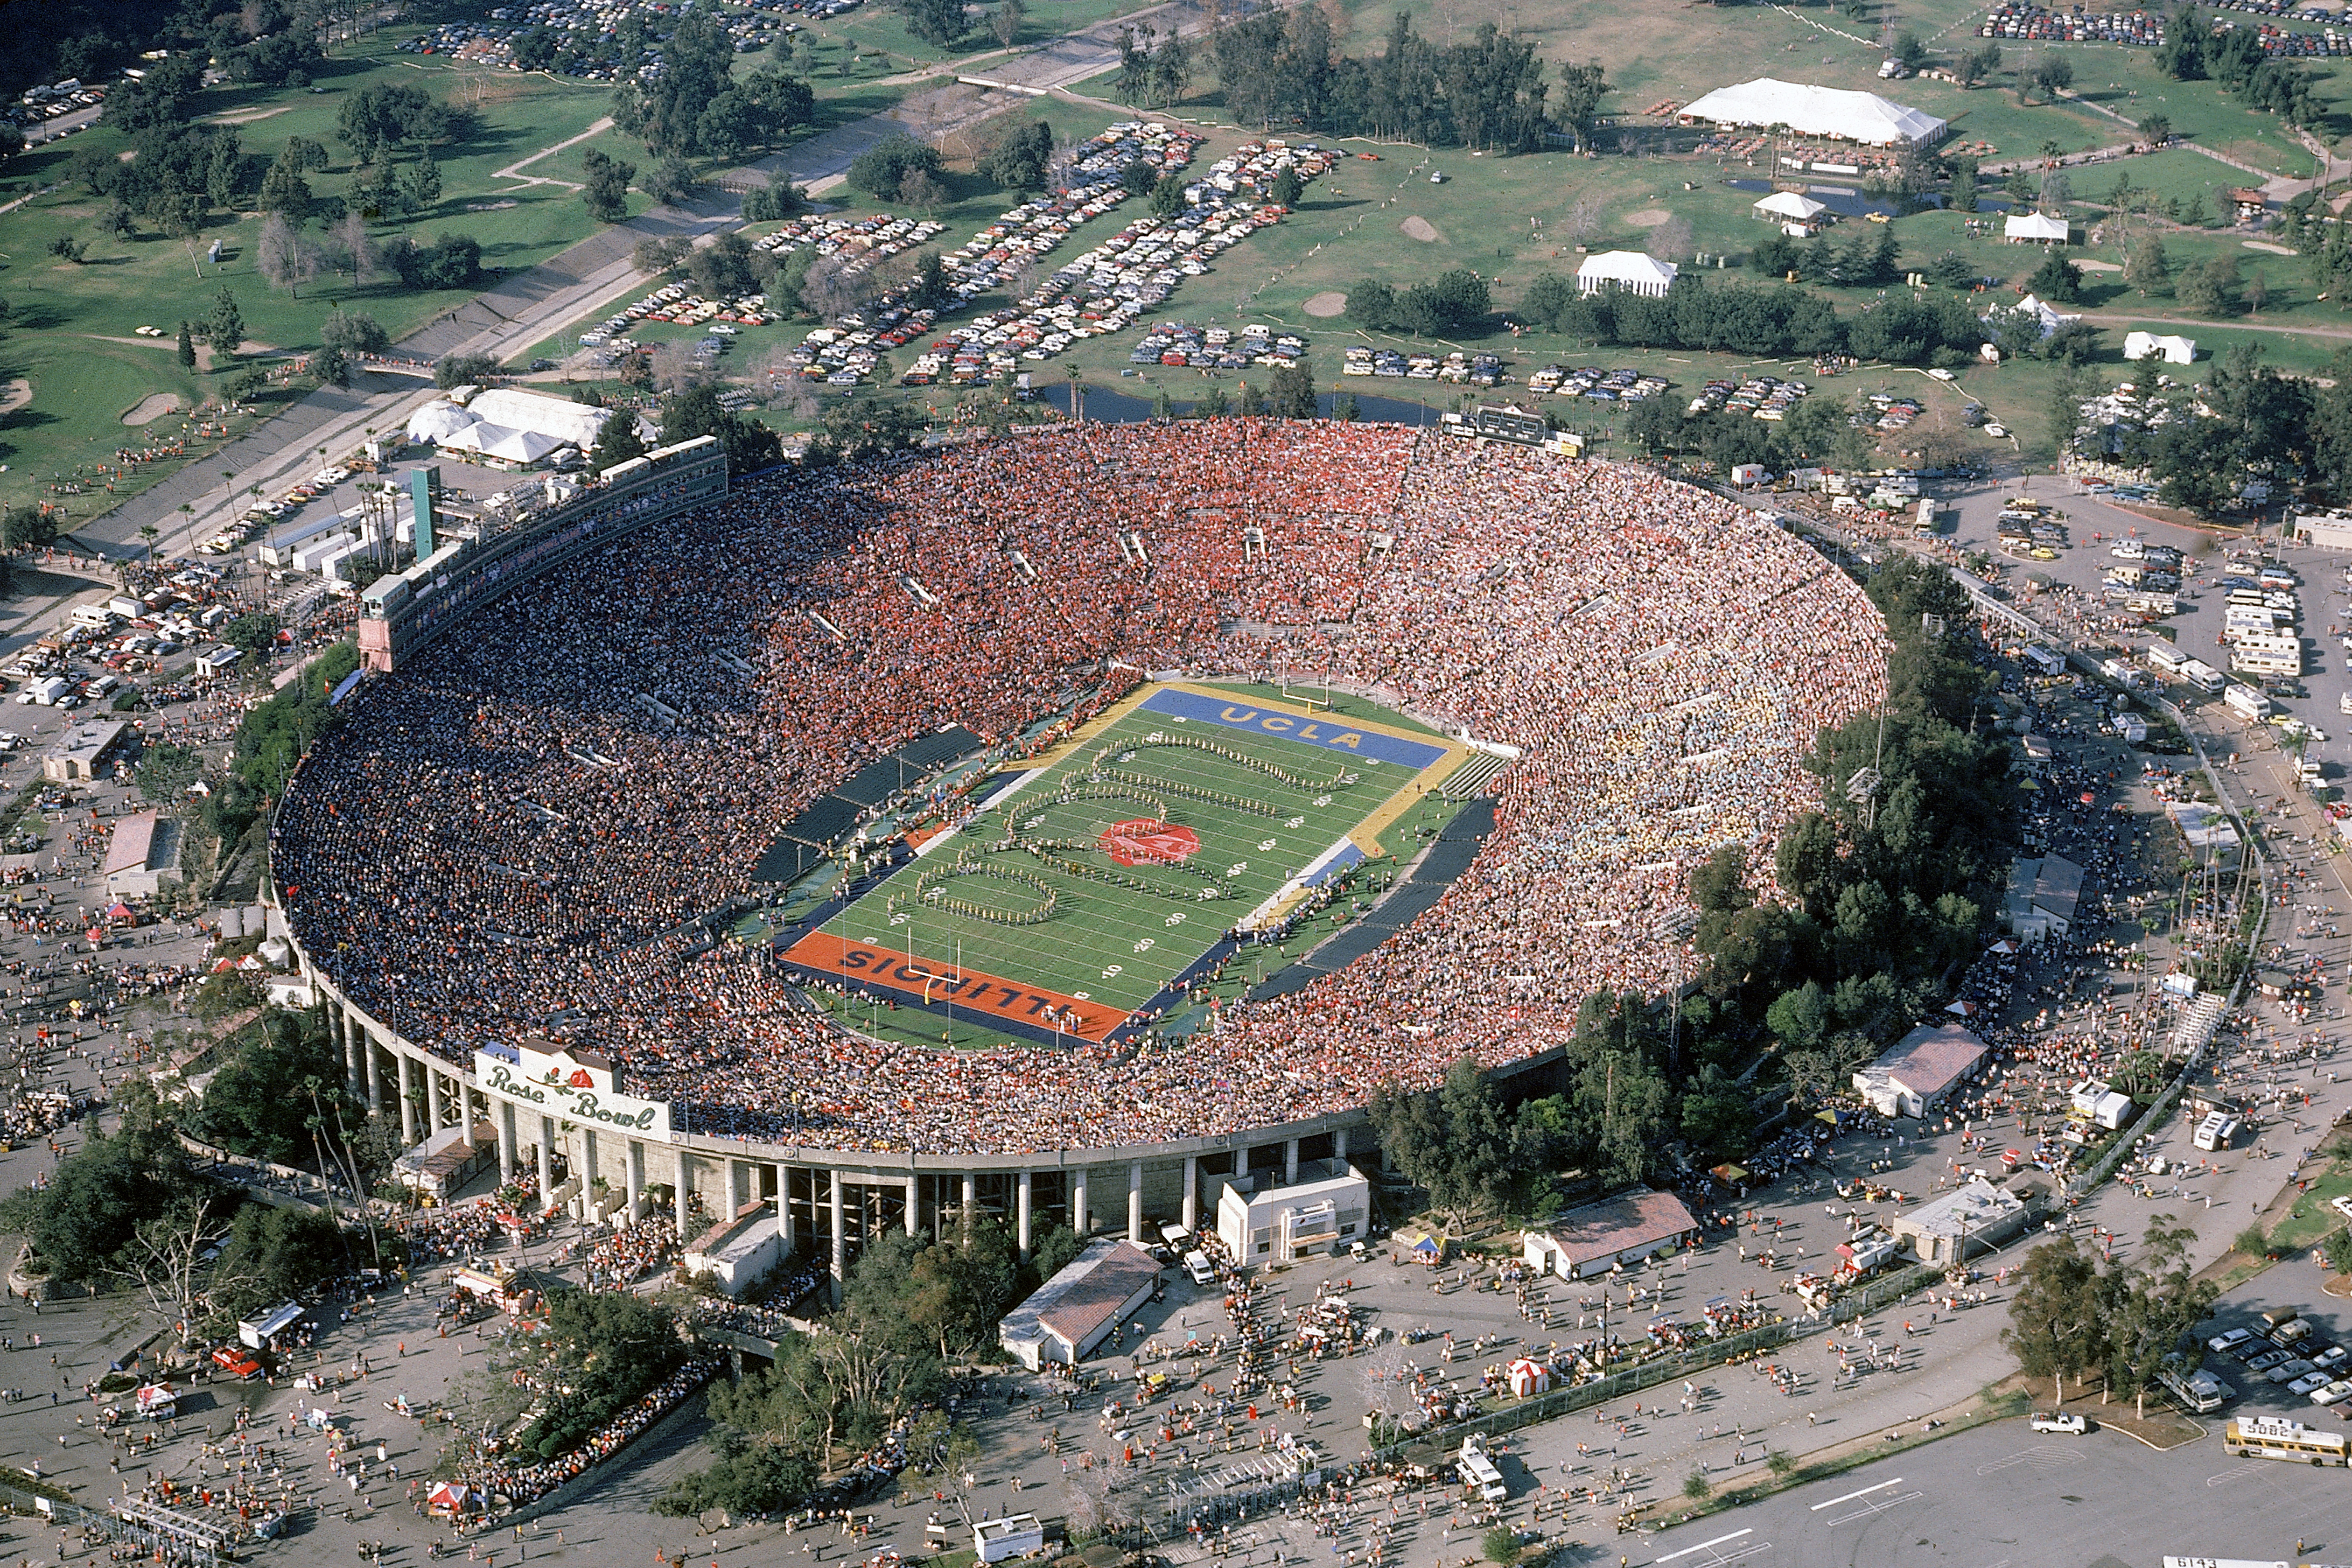 Completed in 1922, the Rose Bowl is best known as the site of the annual Rose Bowl football game, held on New Year's Day. It has also been the home of the UCLA Bruins since 1982.